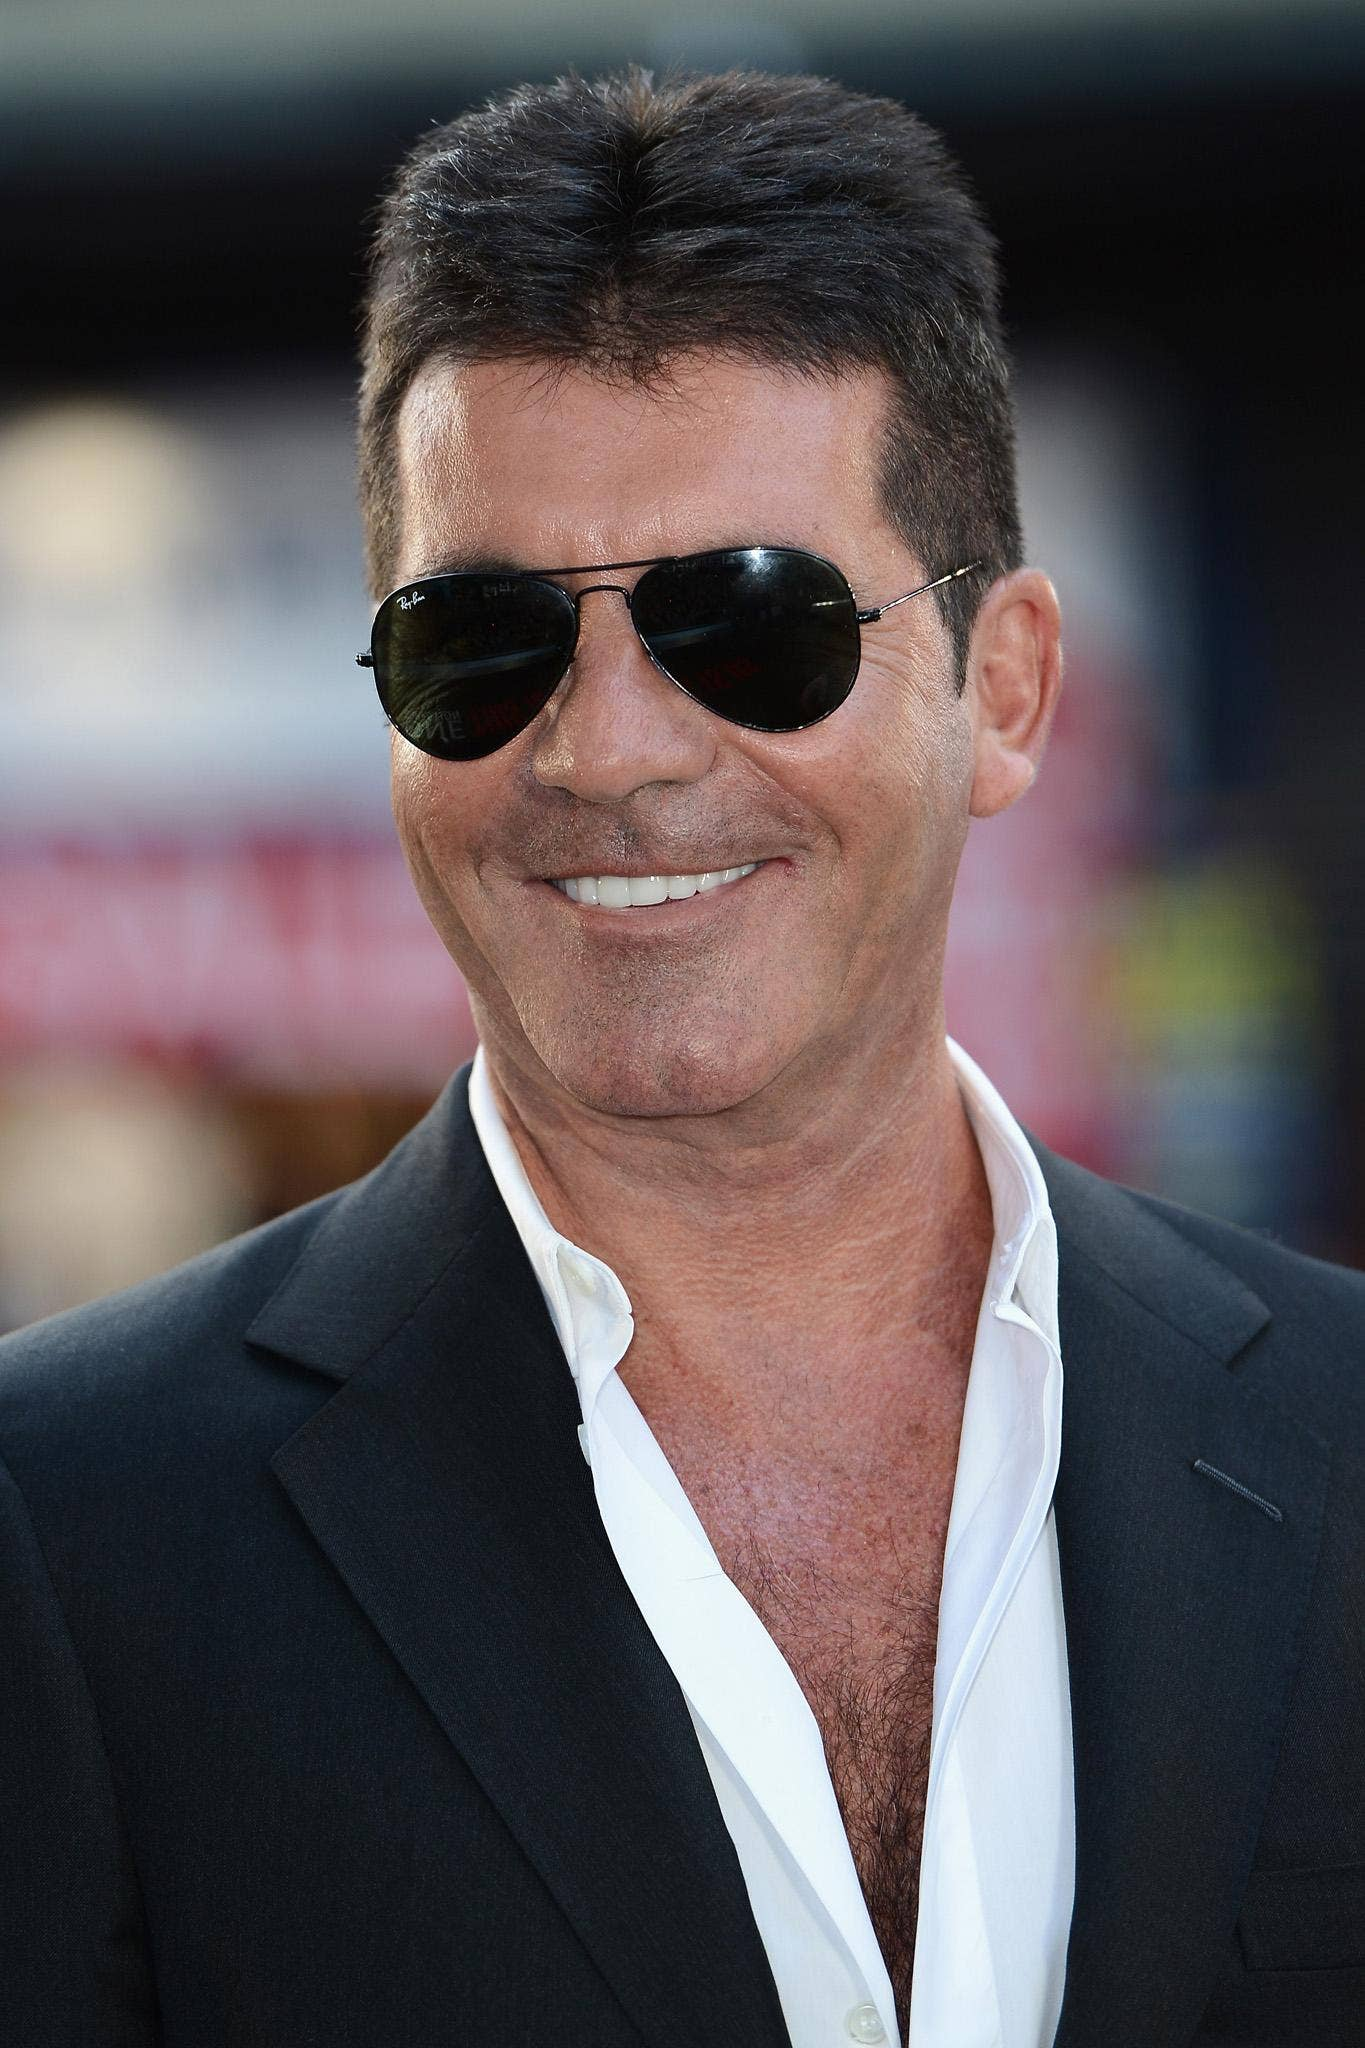 Simon Cowell says he is 'proud' to be becoming a father